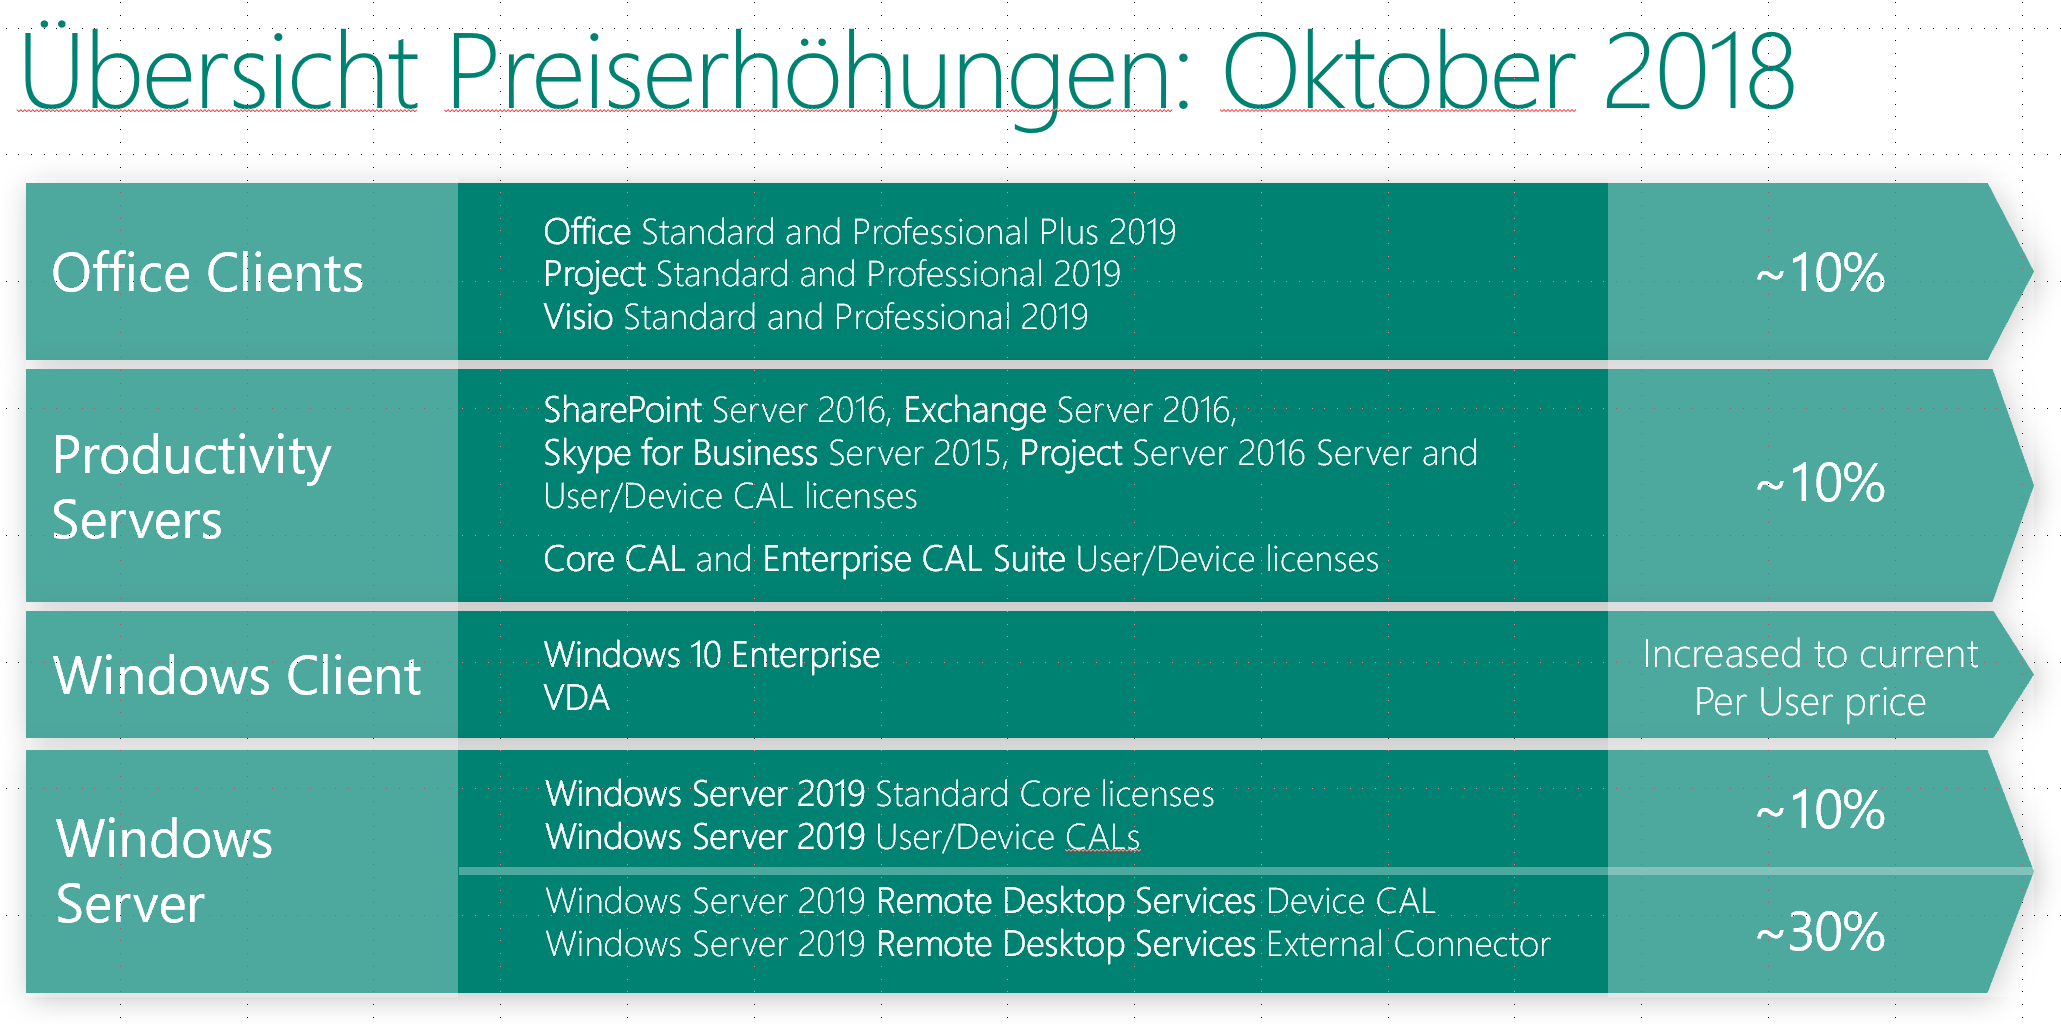 Gerade Microsoft Windows Server 2019 Option 50 User Remote Desktop Service Rds Cals Durchsichtig In Sicht Software Computer, Tablets & Netzwerk